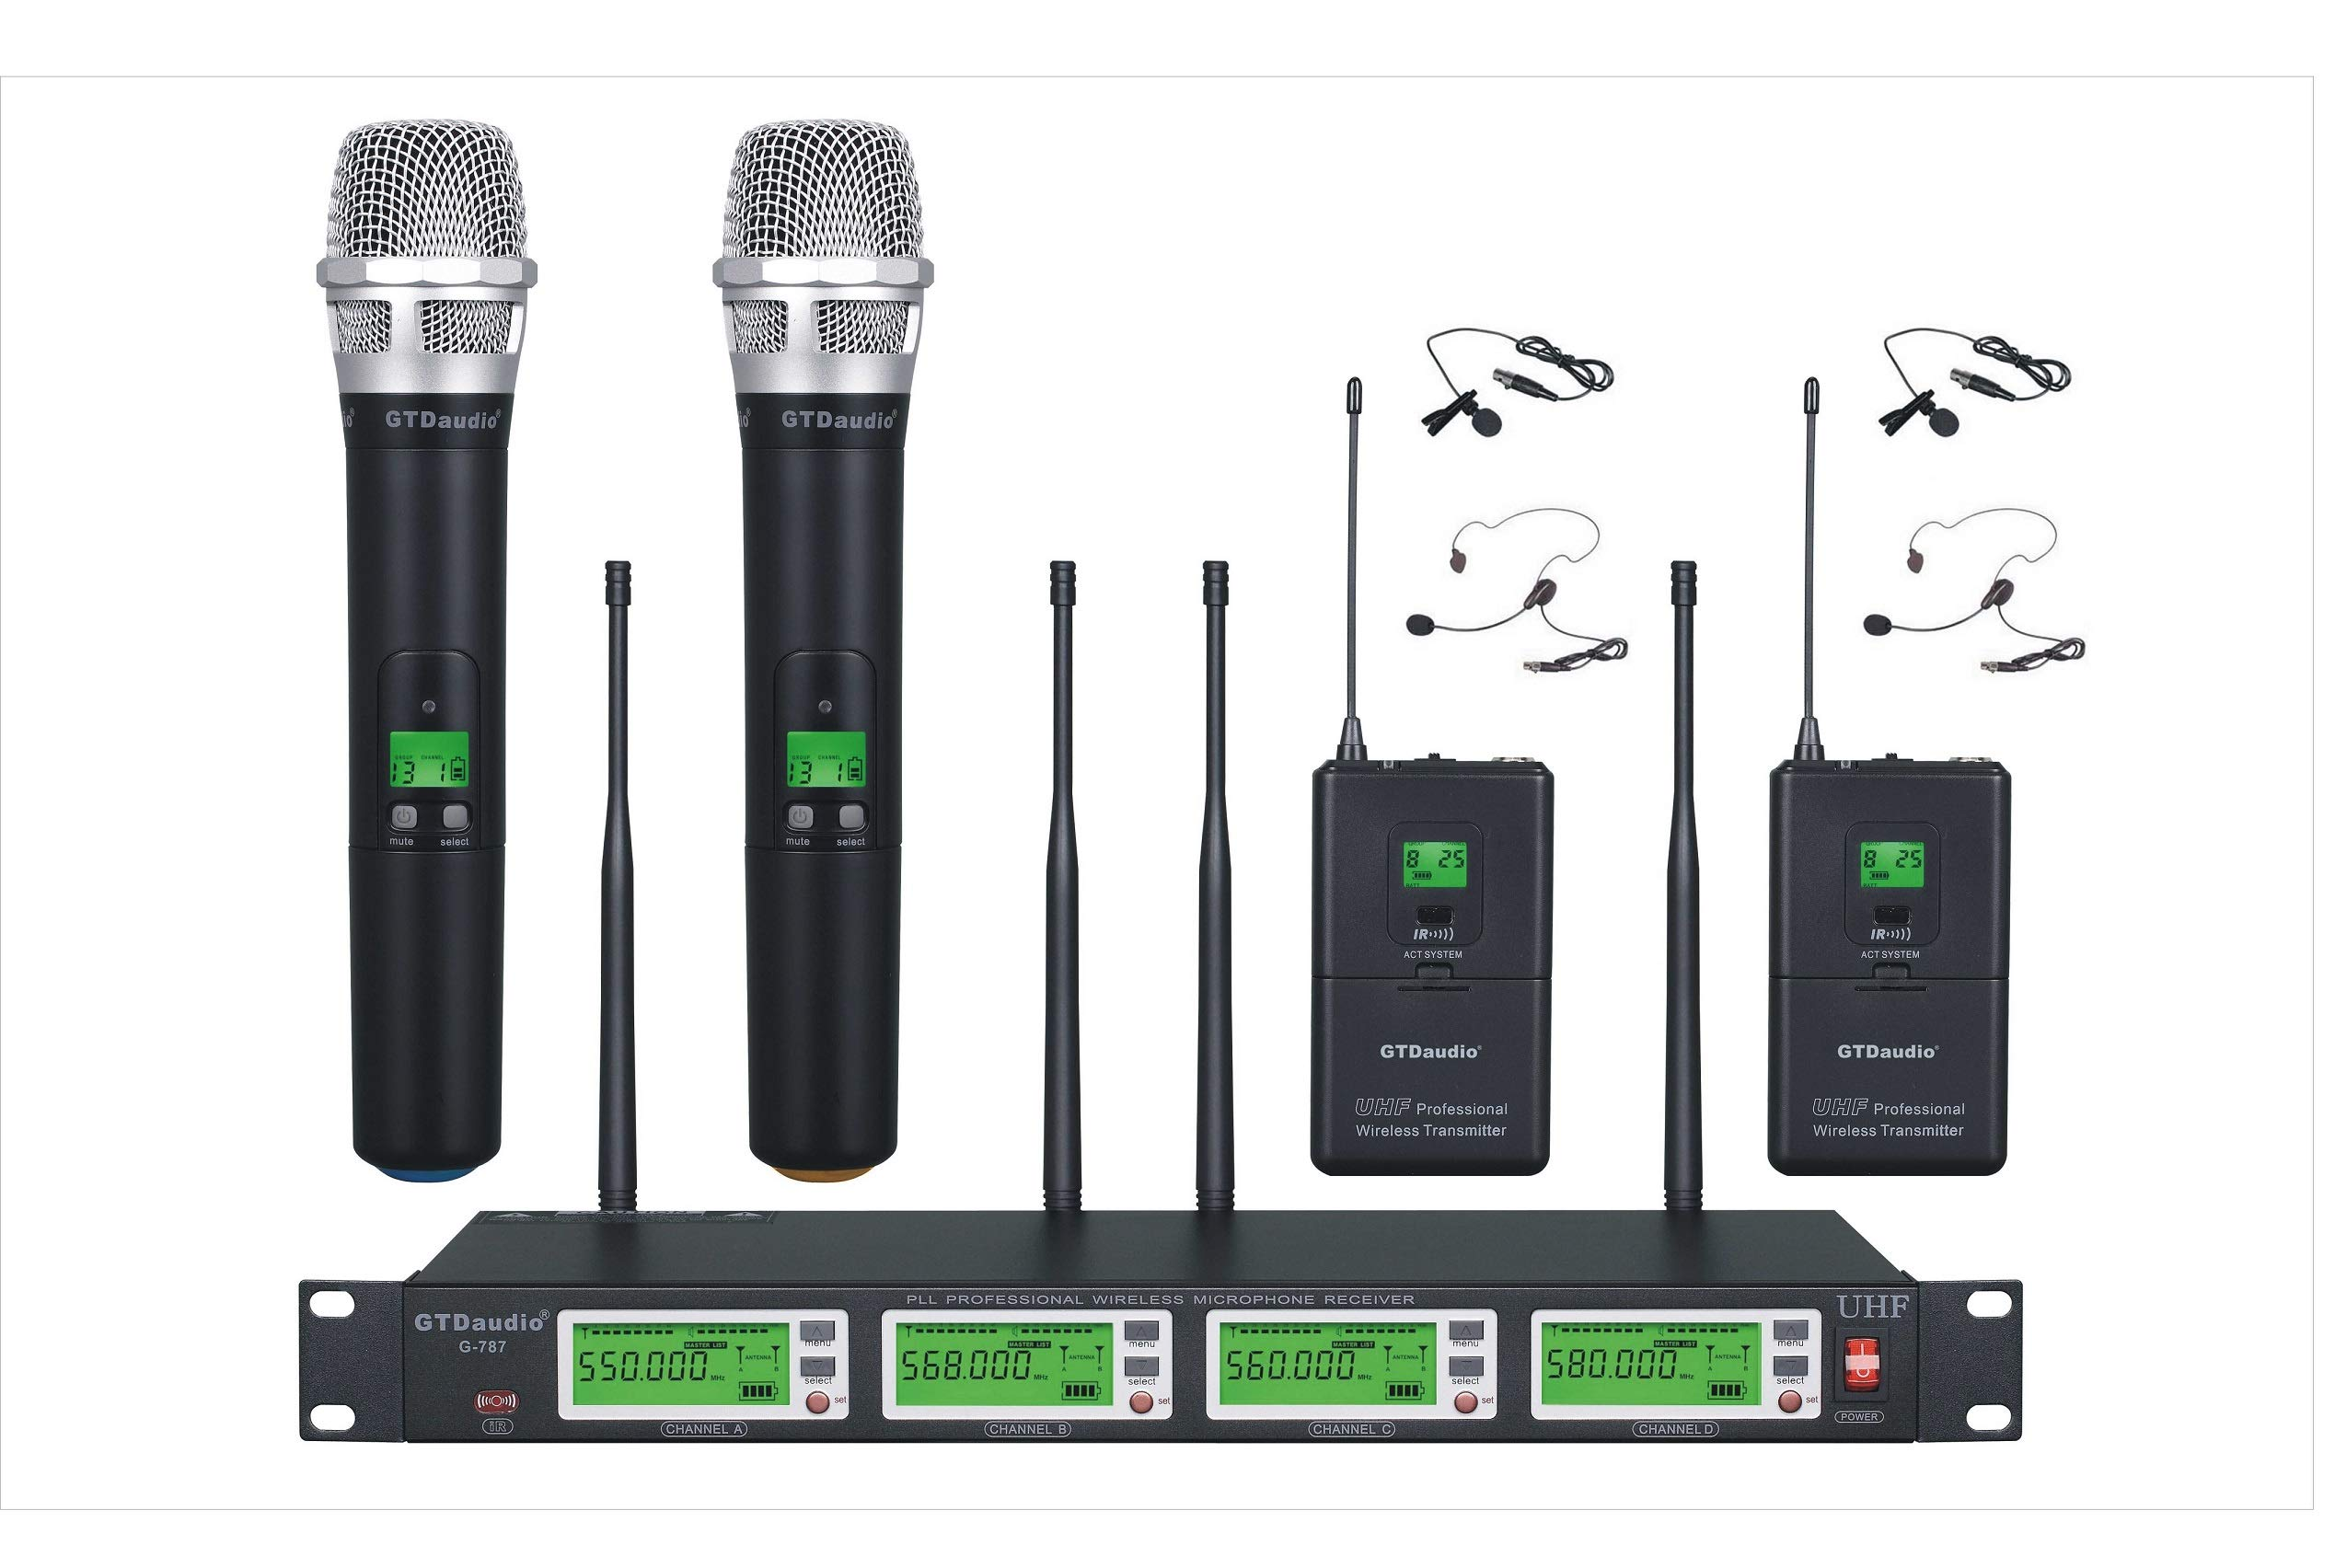 GTD Audio 4x800 Selectable Frequency Channels UHF Diversity Wireless Hand-held/Lavalier/Lapel/Headset Microphone Mic System 787 (2 Handheld & 2 Lavalier)